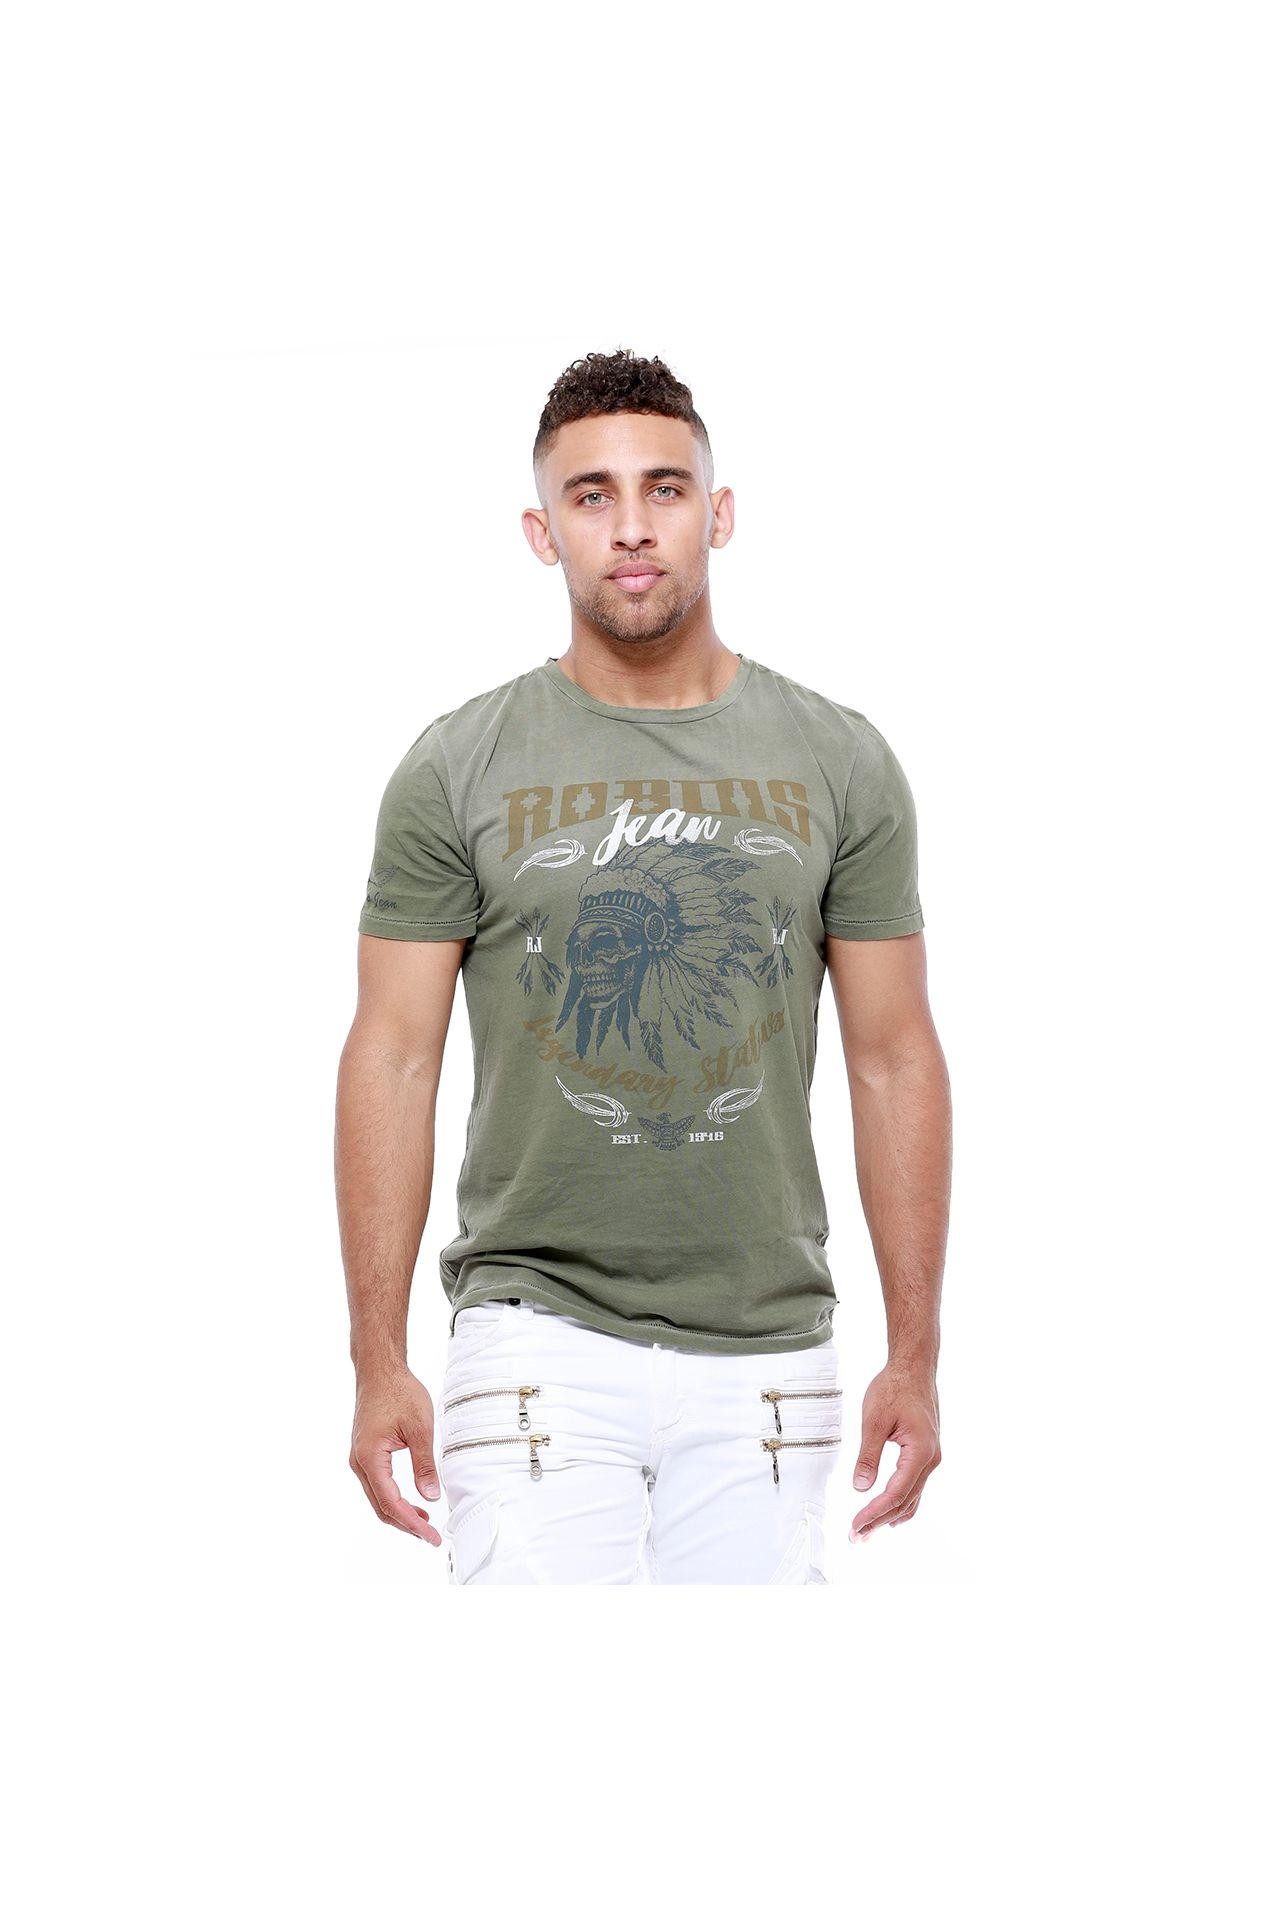 NATIVE SKULL TEE IN PIG SPRAY GREEN ARMY